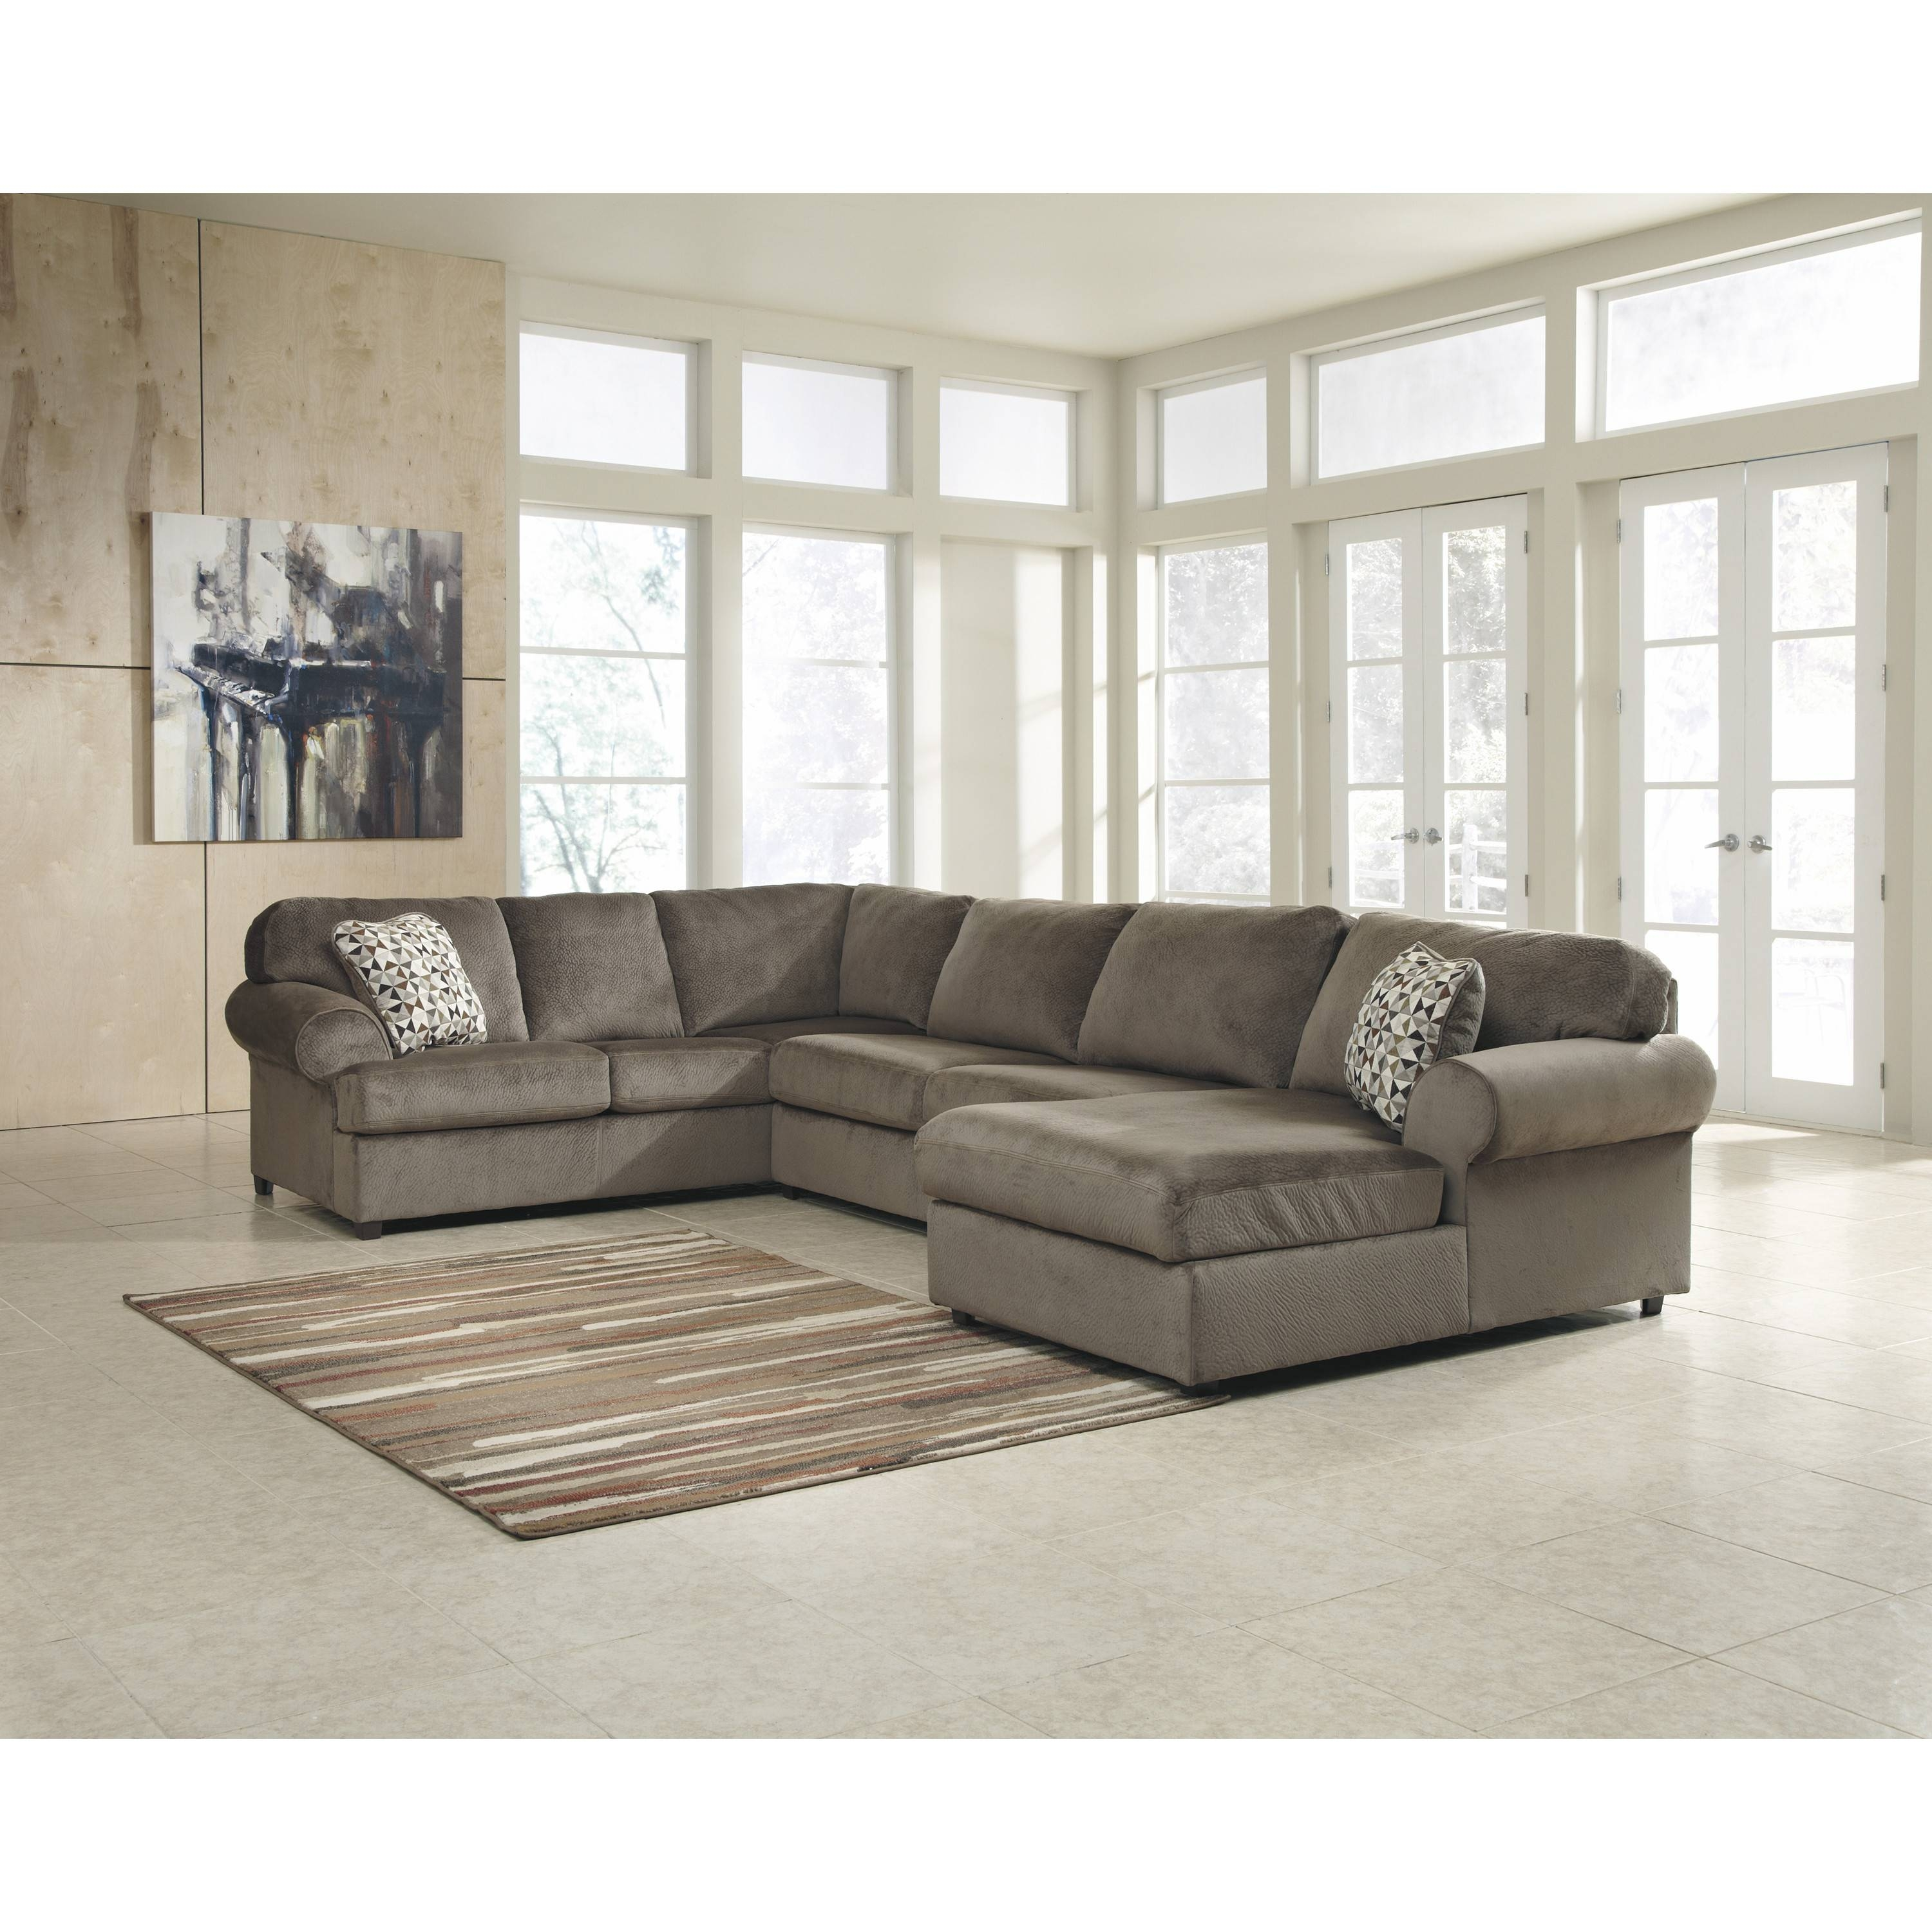 Long Sectional Sofa With Chaise | Tehranmix Decoration regarding Down Filled Sofa Sectional (Image 11 of 25)